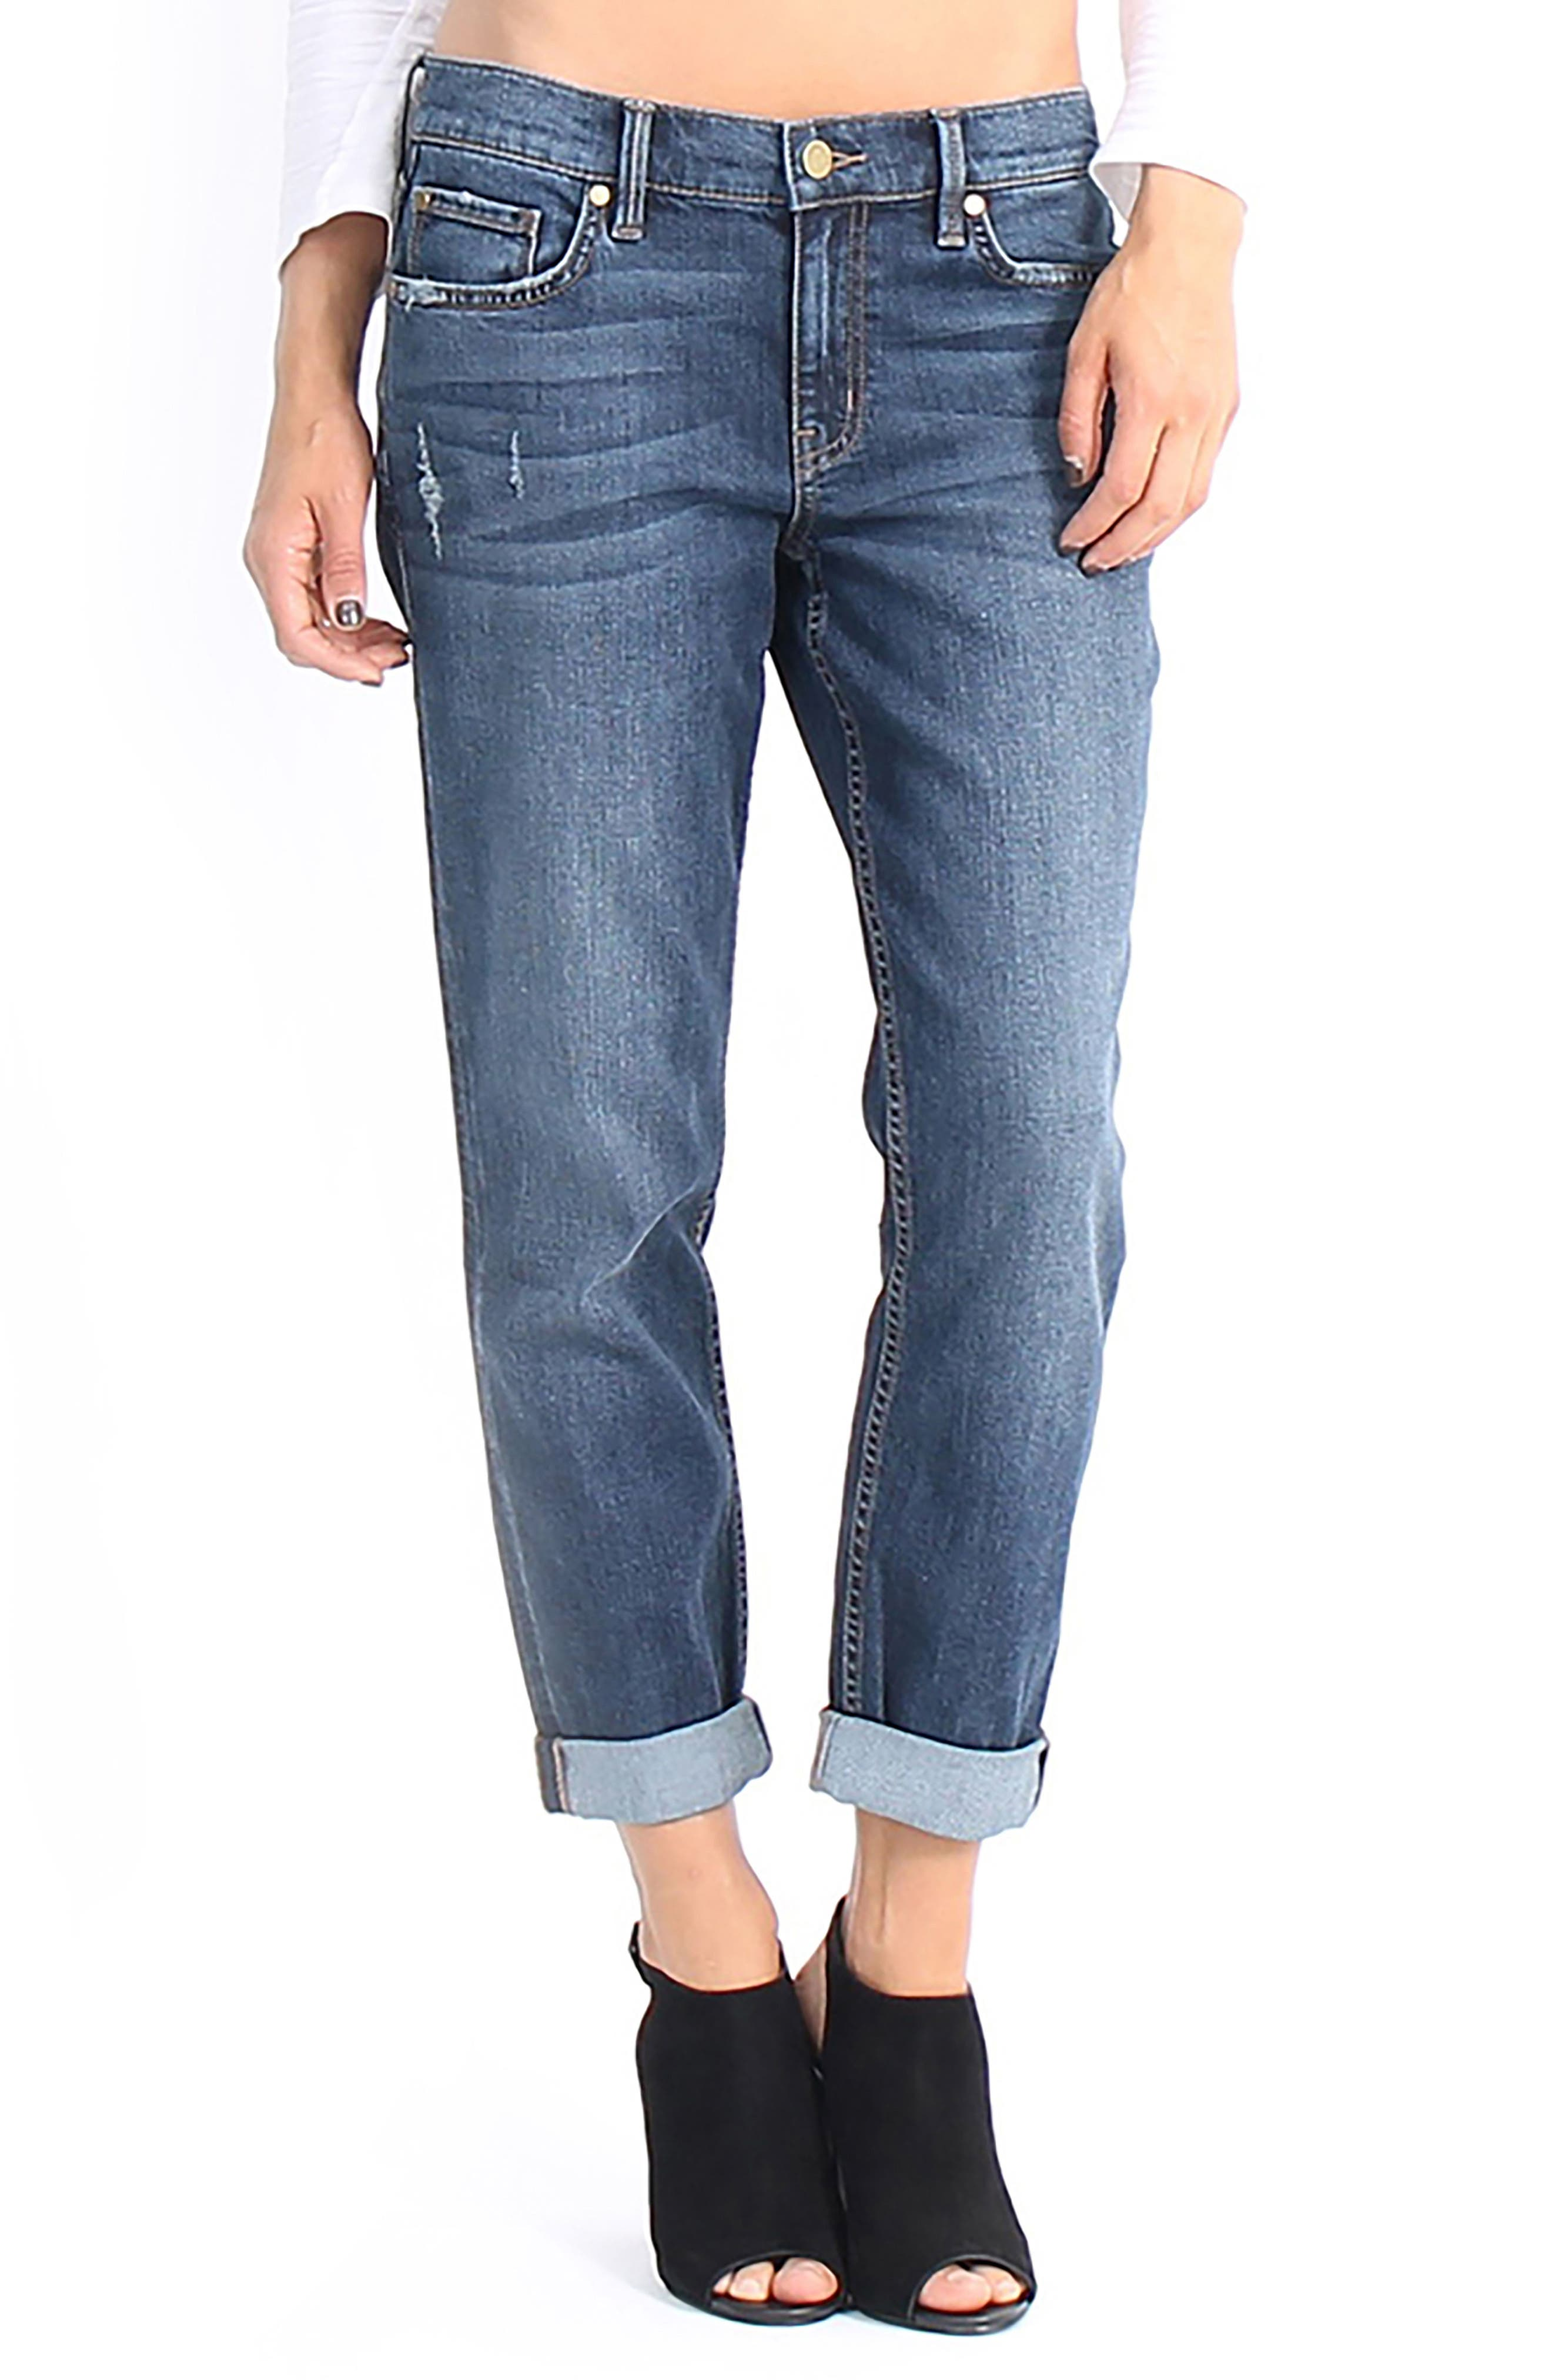 Level 99 Sienna Stretch Ankle Jeans